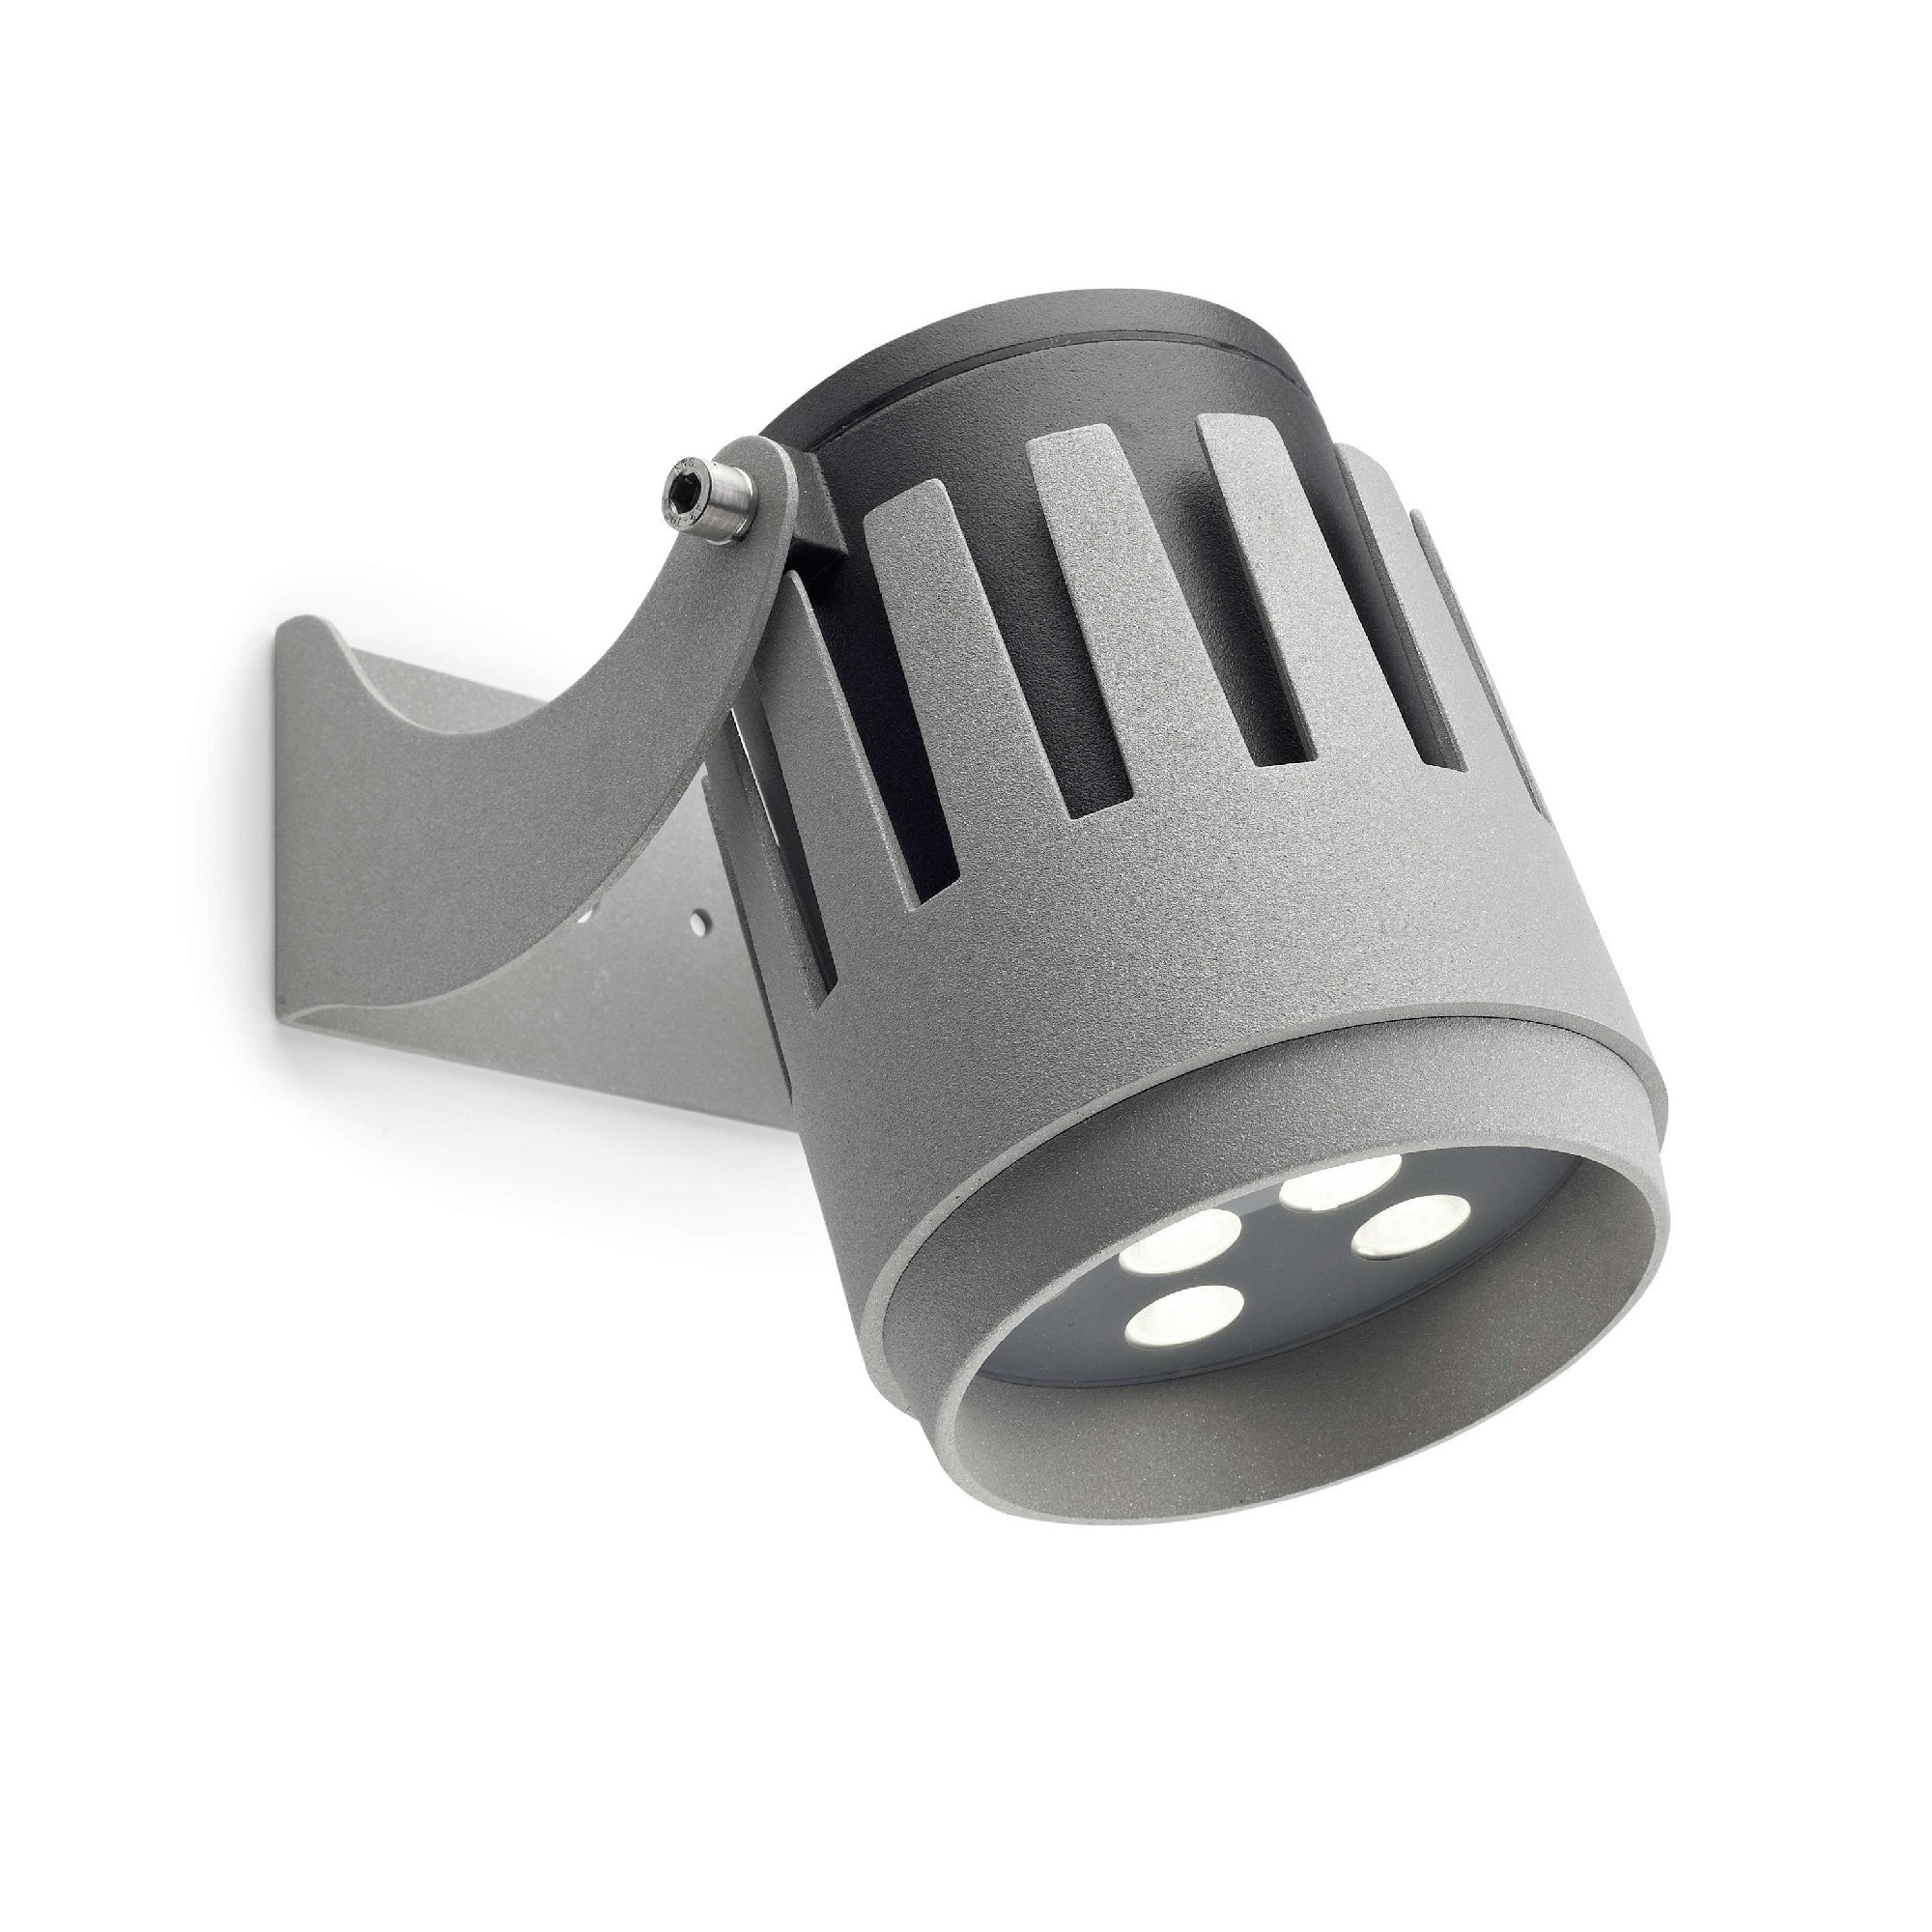 Leds C4 OUTDOOR 05 9925 34 CL LED lampen